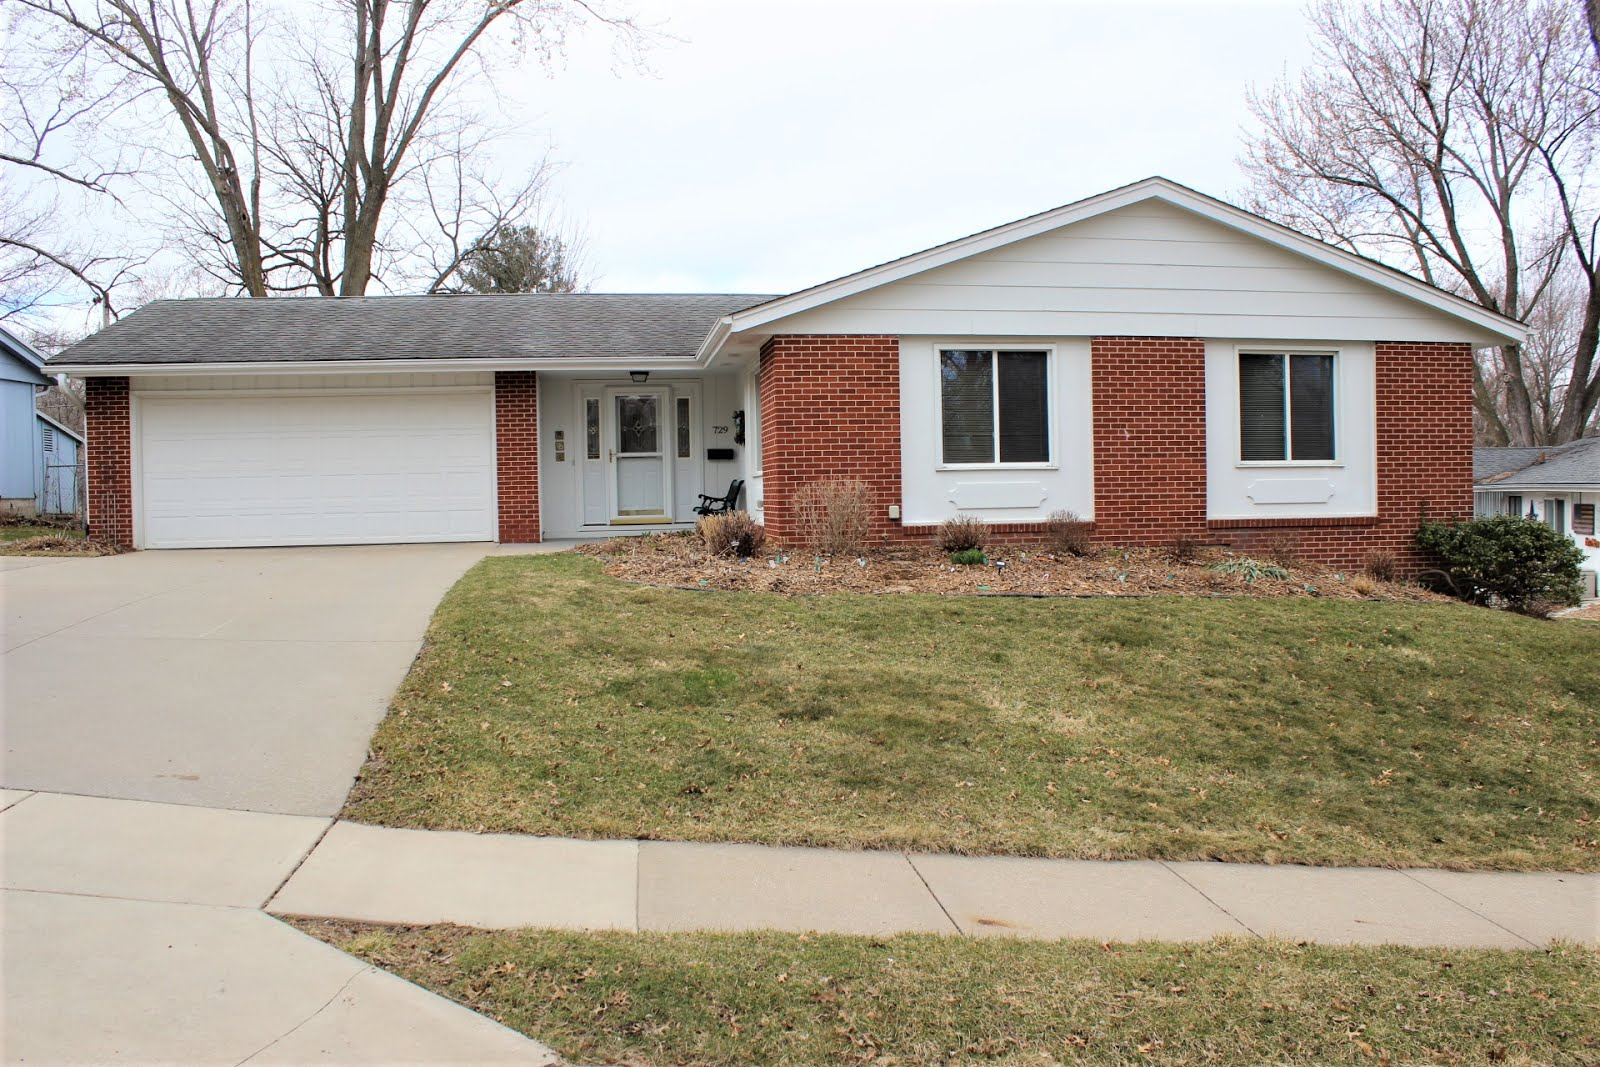 729 Alpine Dr. Iowa City, IA 52245 $284,900